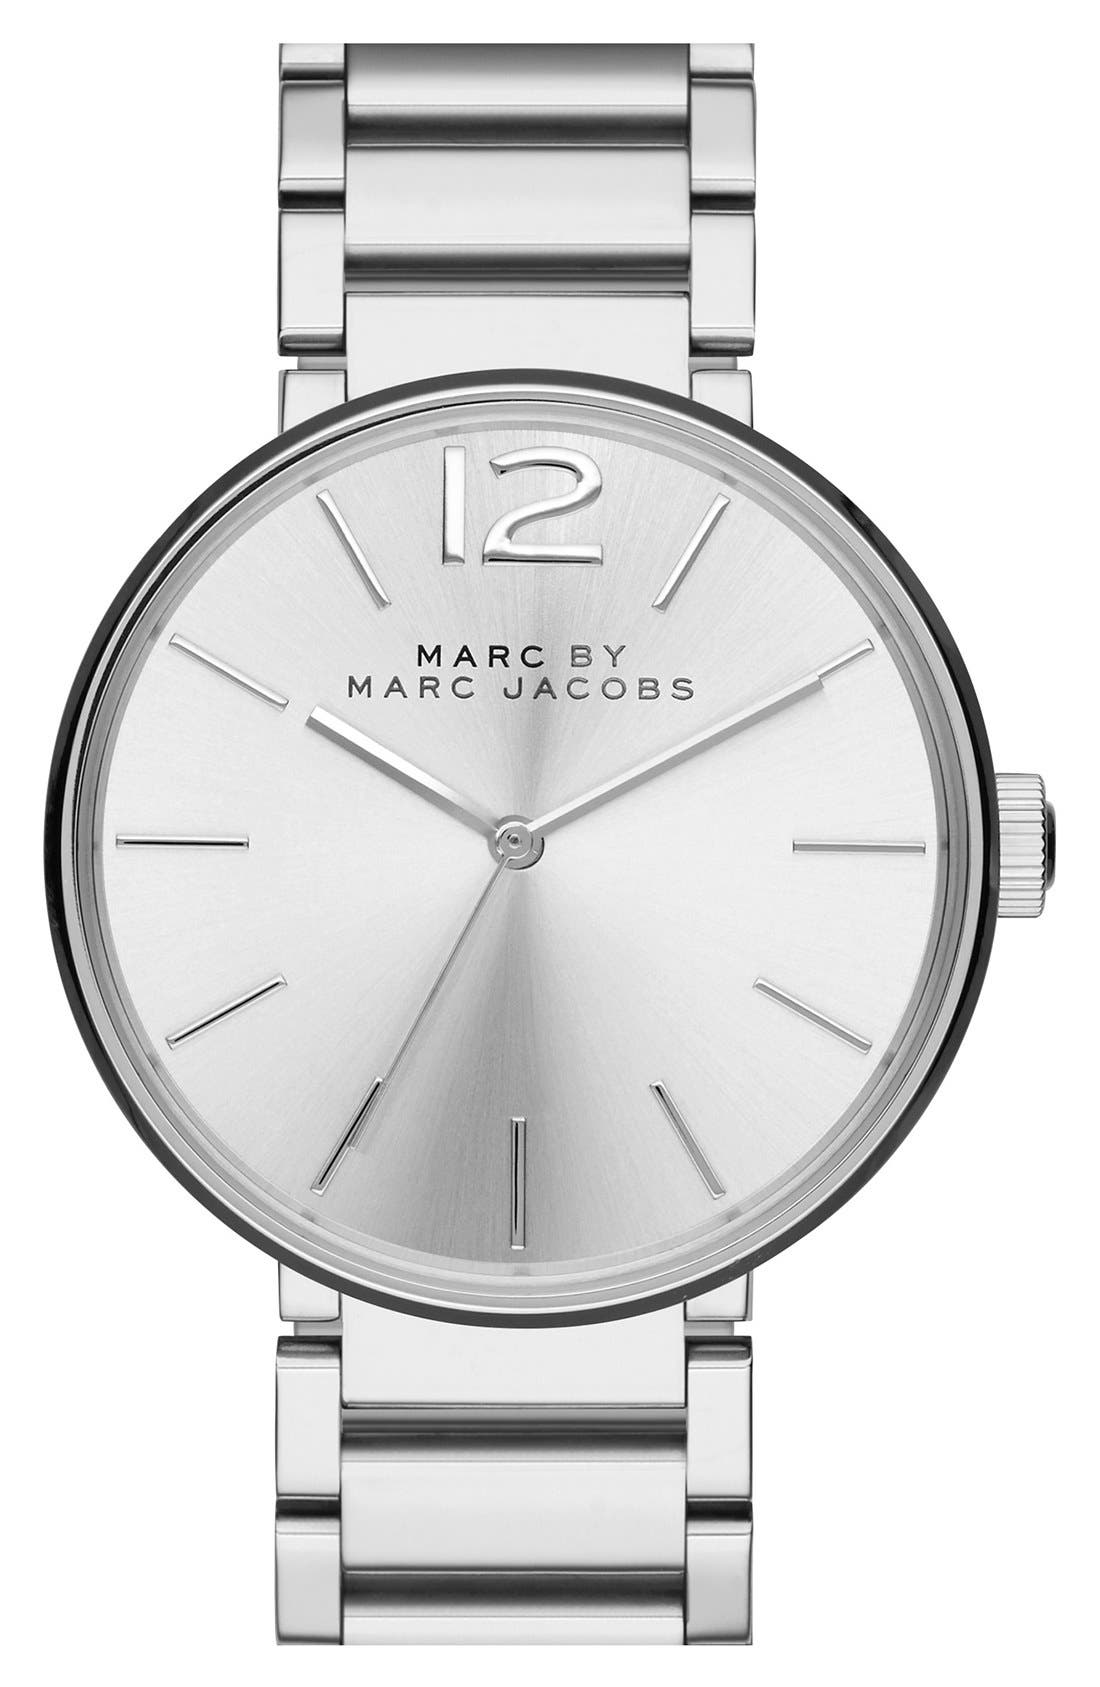 Main Image - MARC JACOBS 'Peggy' Bracelet Watch, 36mm